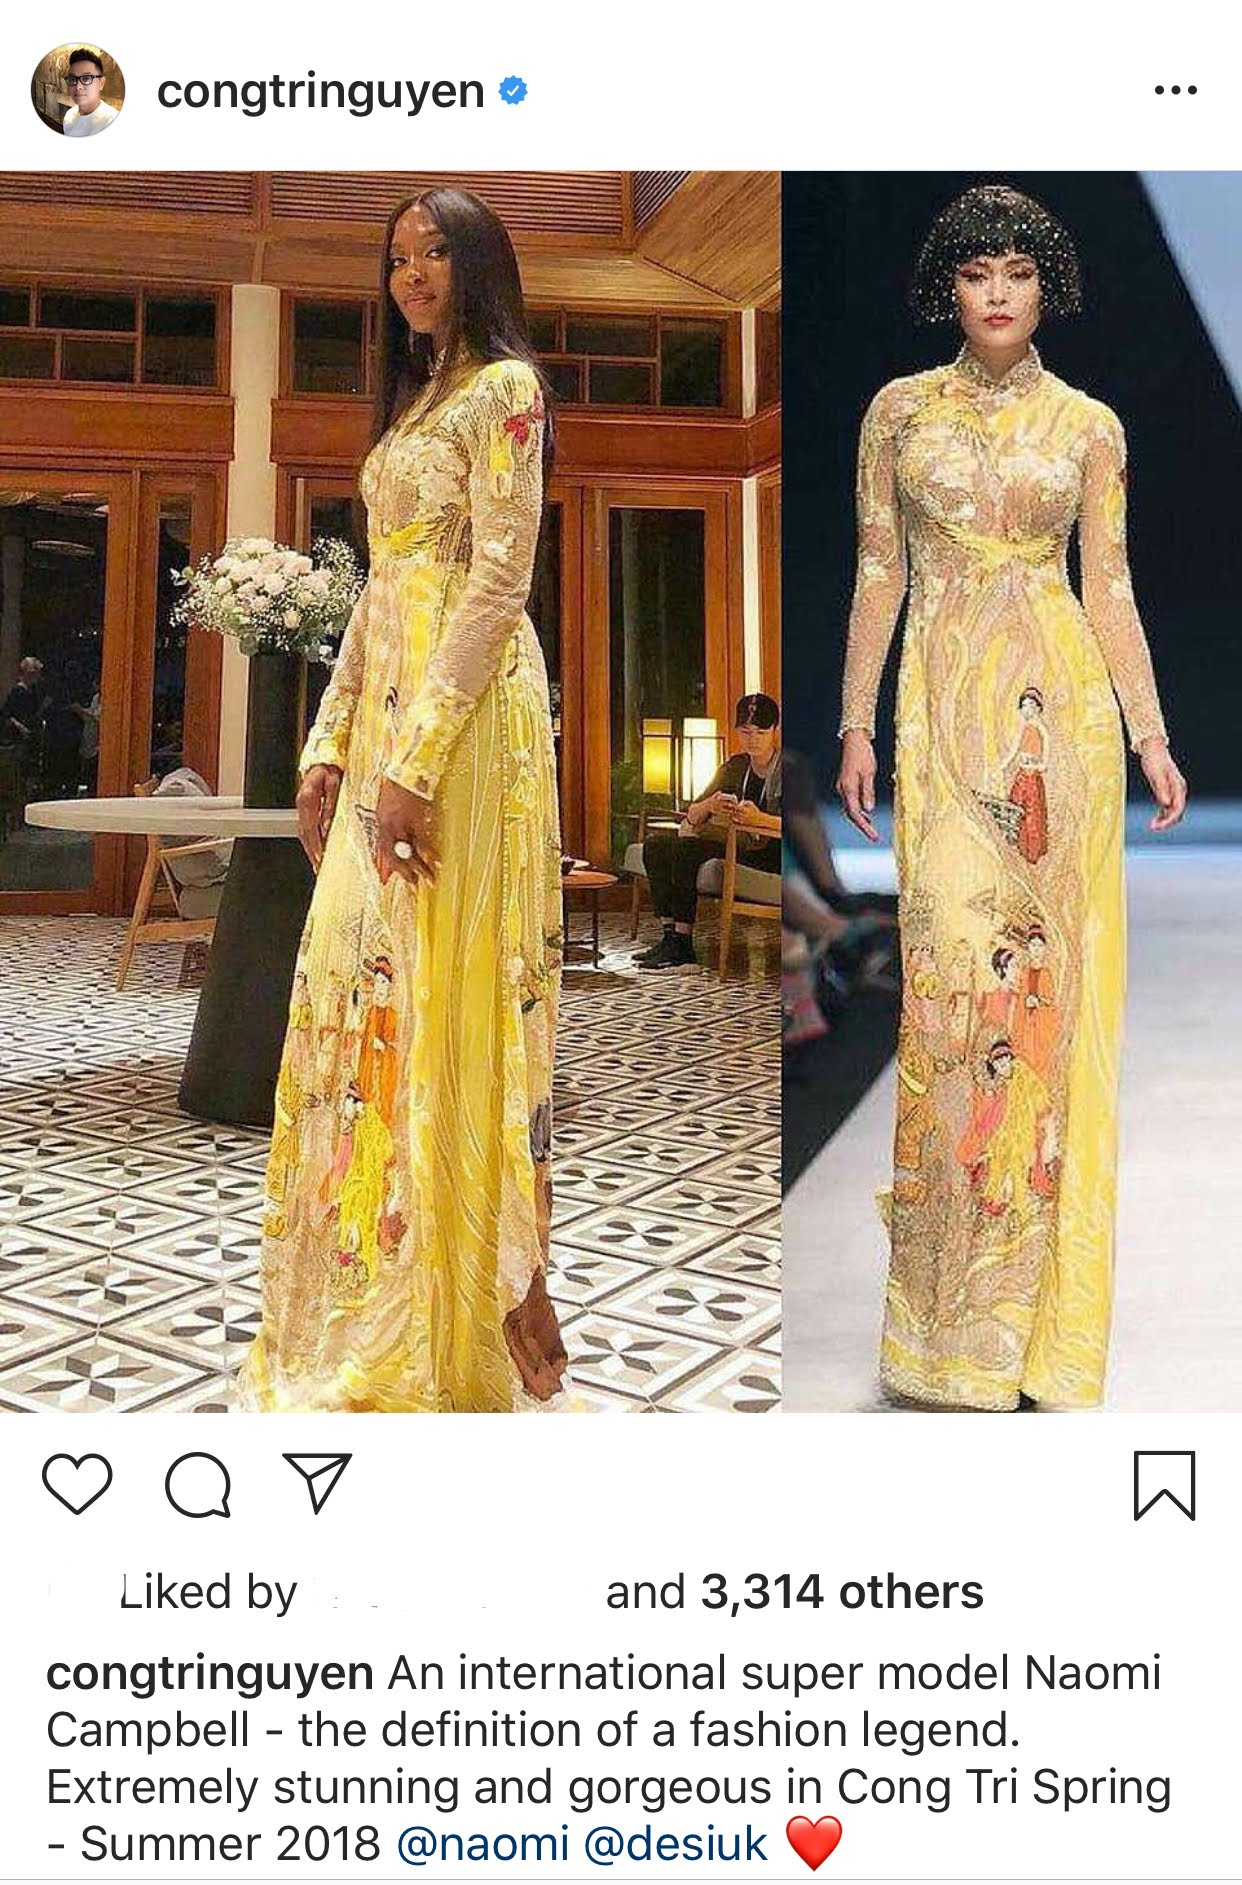 A screenshot showing a picture the Vietnamese designer shares on his verified Instagram handle in which famous model Naomi Campbell donned an ao dai by Cong Tri.